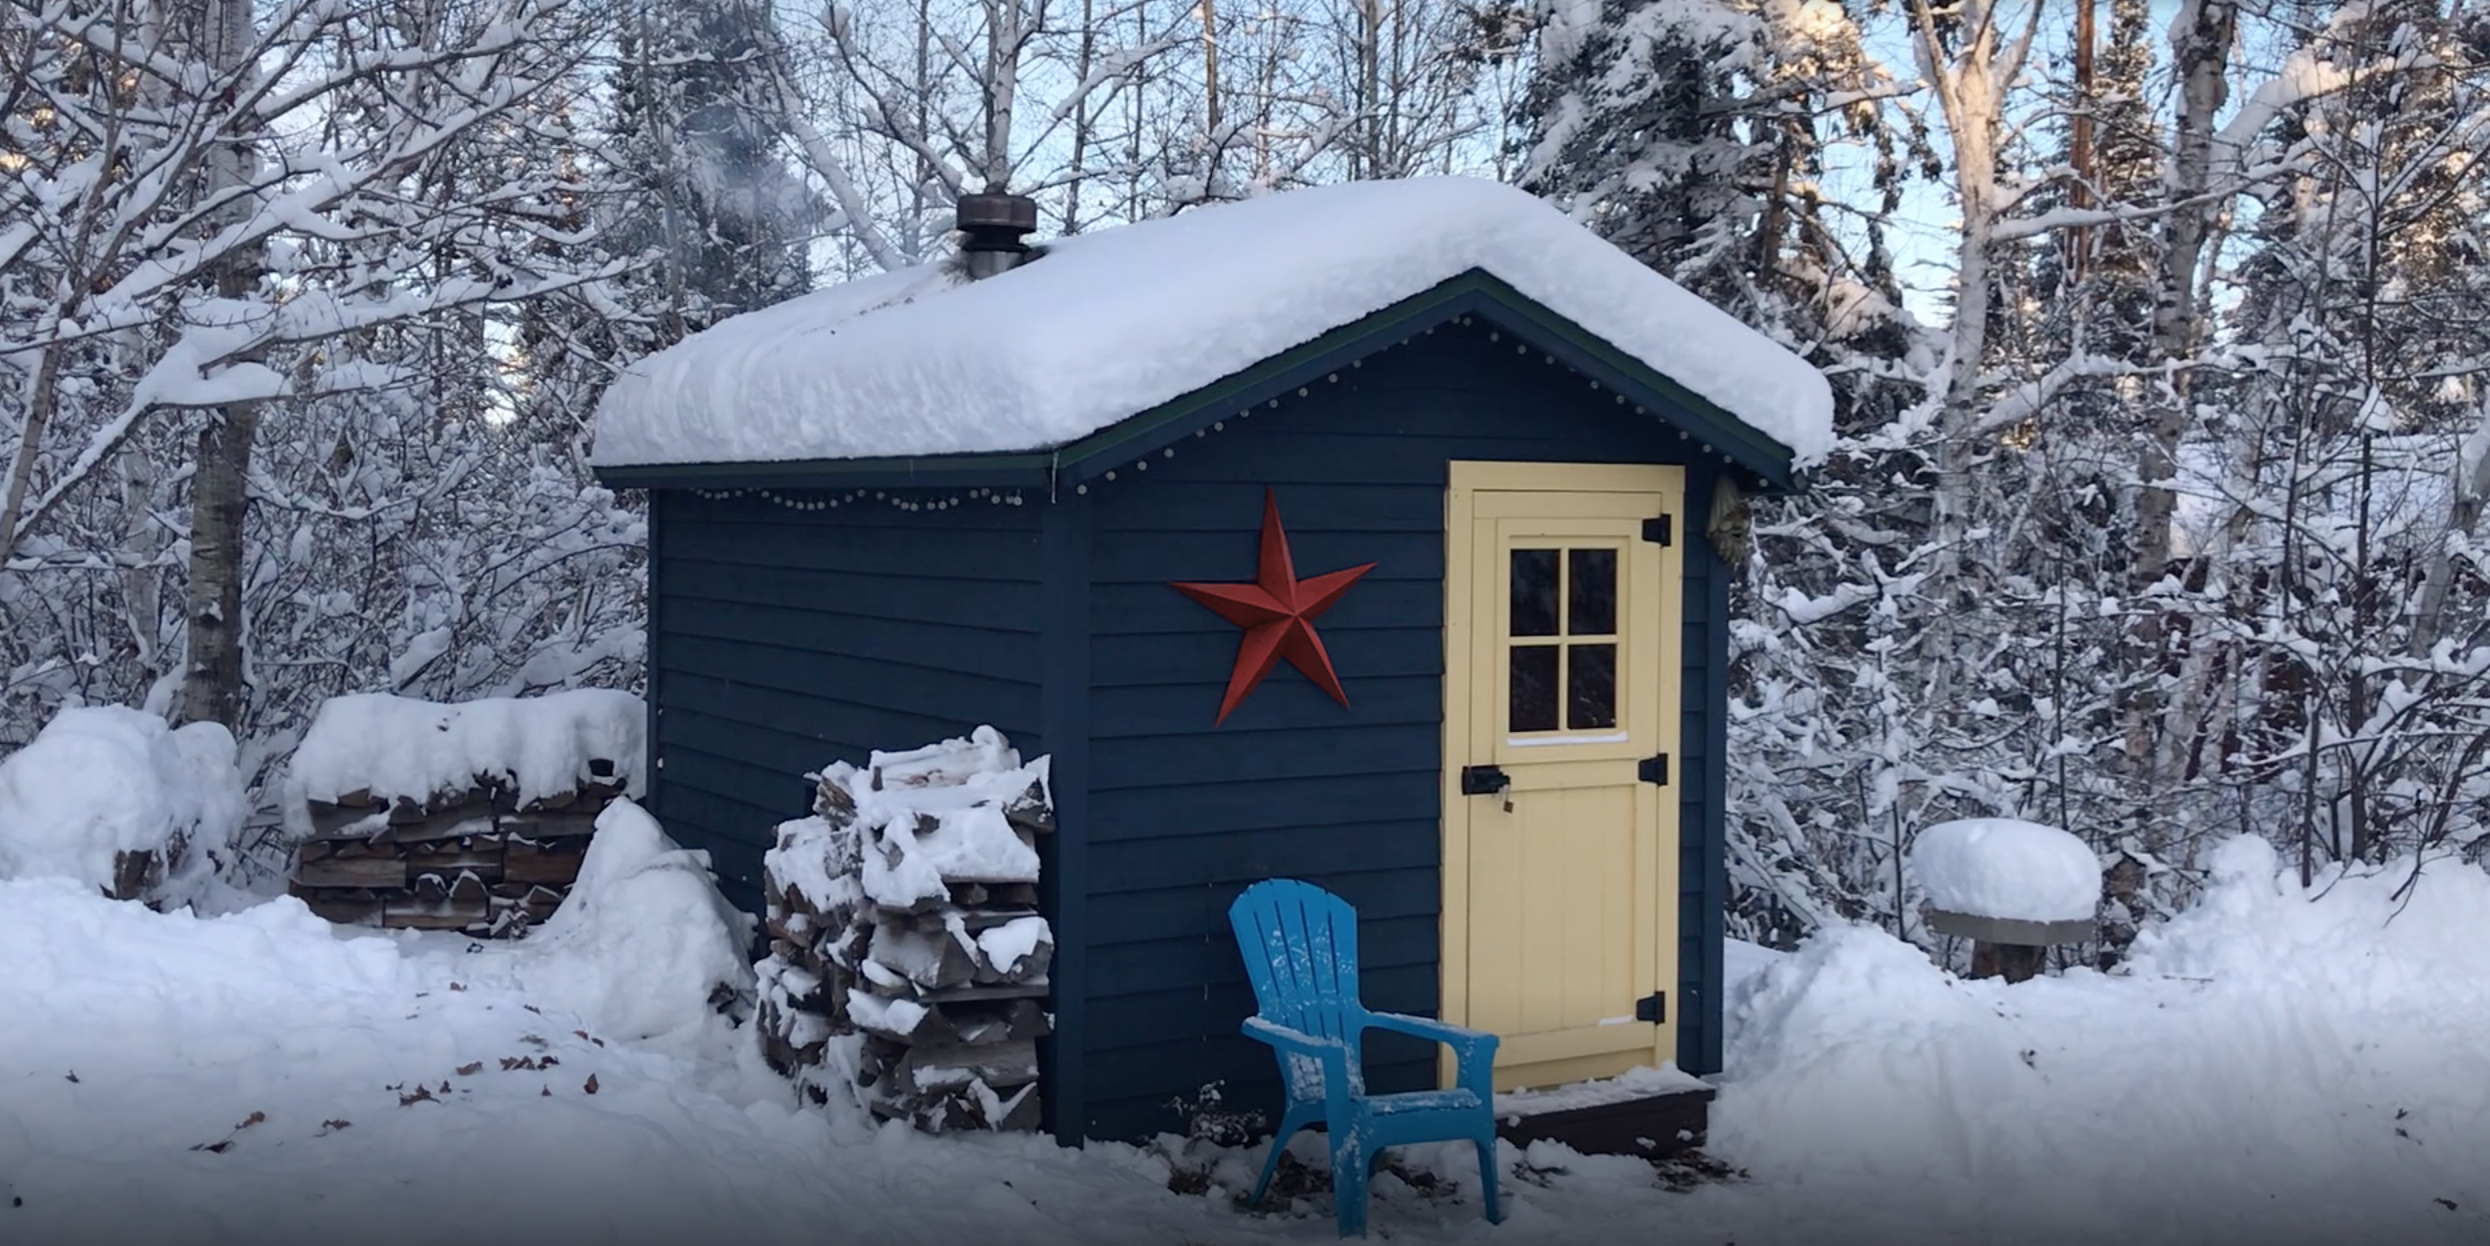 A warming house out in the snowy woods